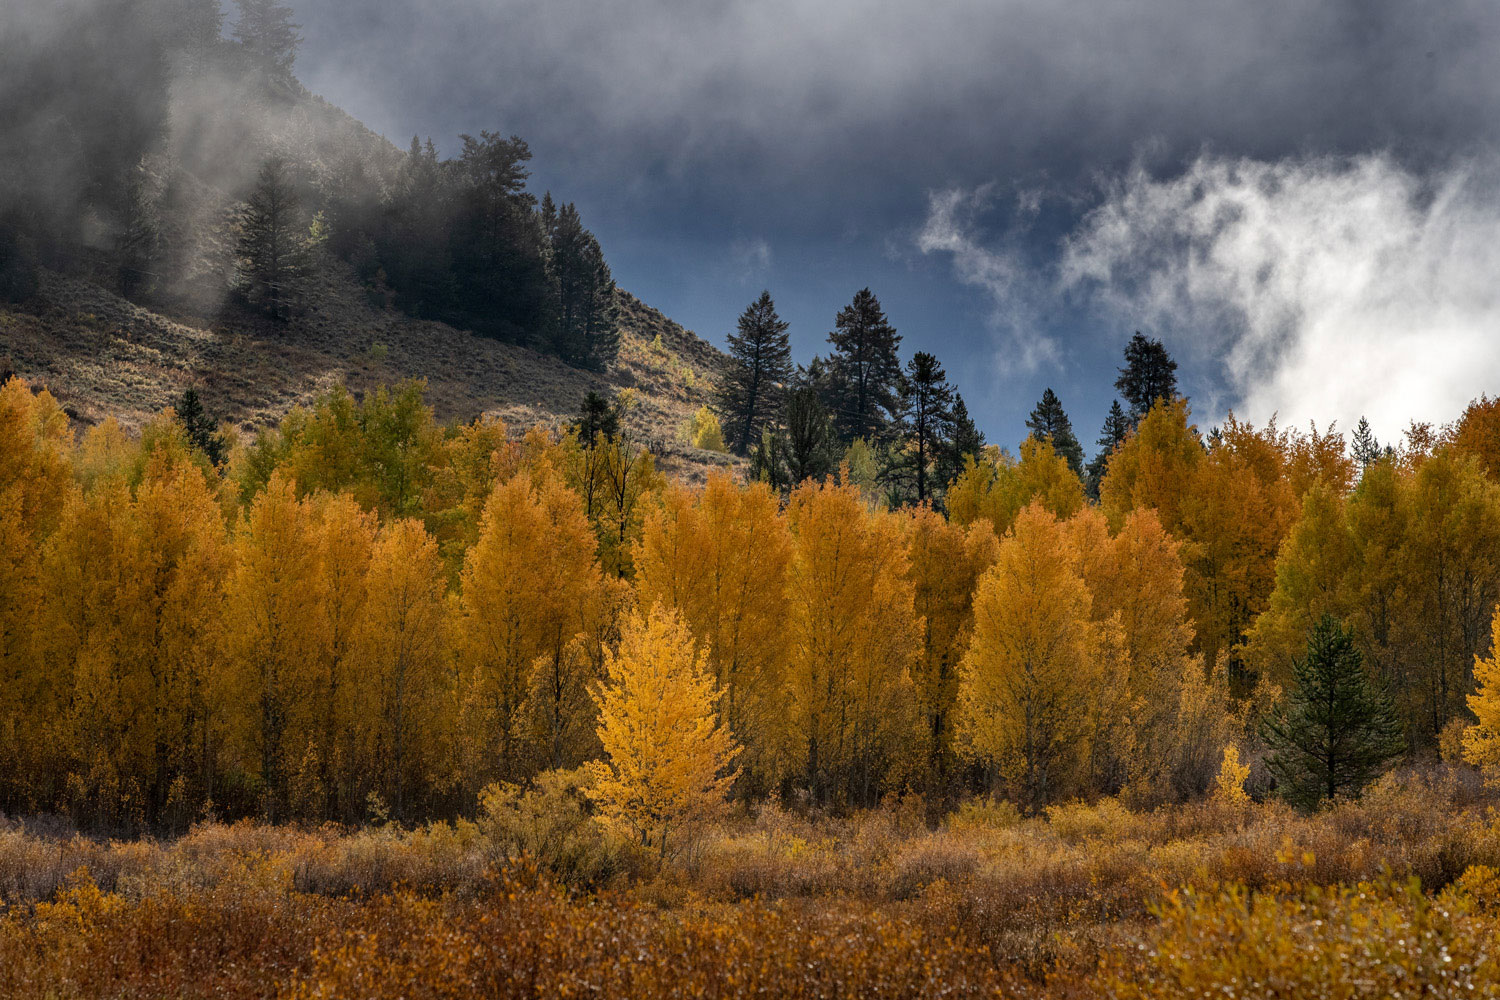 A winter storm gathers force just beyond the ridge where these aspen give final hold to their golden treasure.